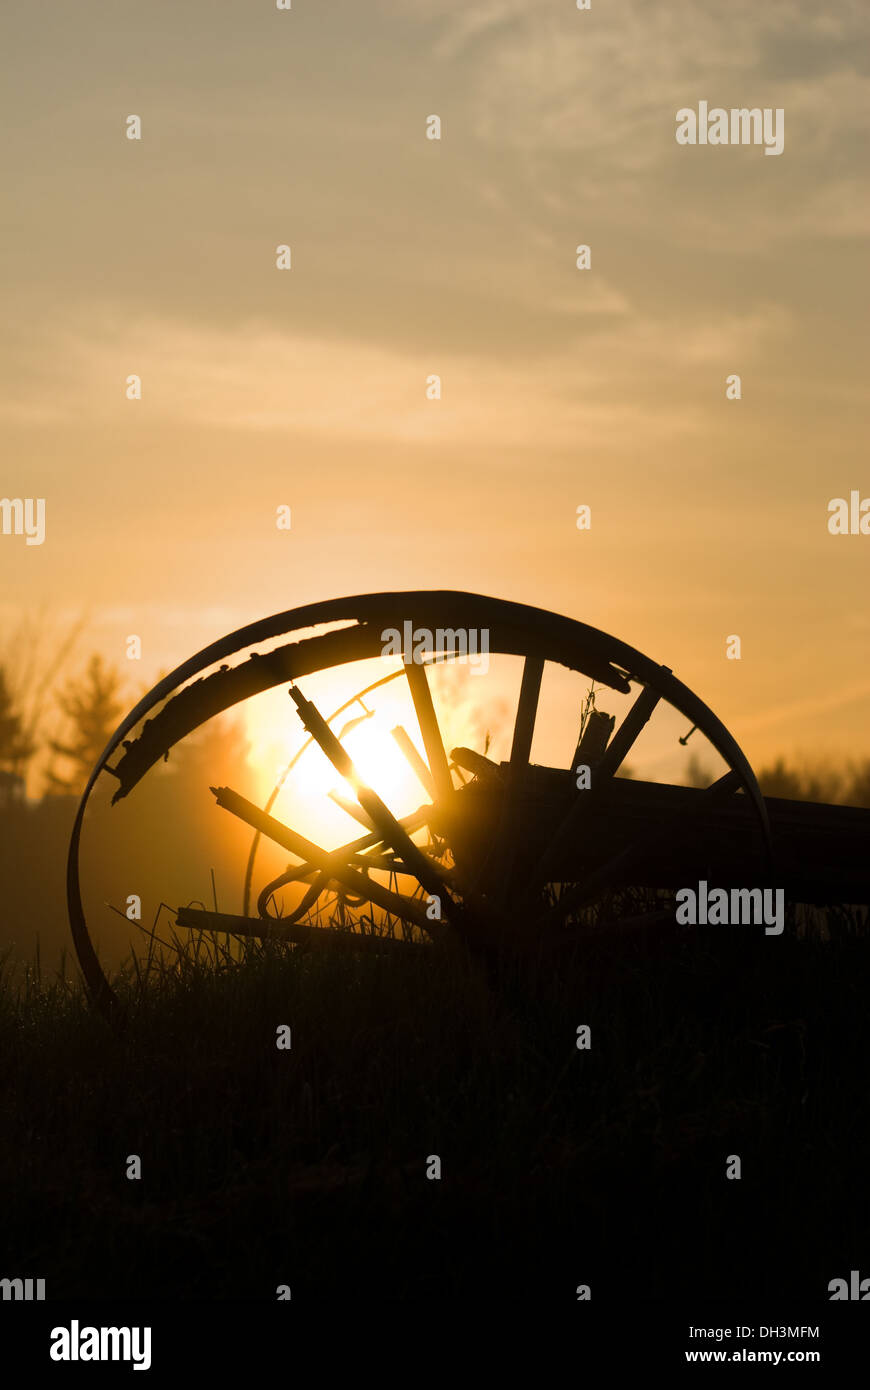 The sun rises behind a broken wagon wheel lying in a hay field. - Stock Image